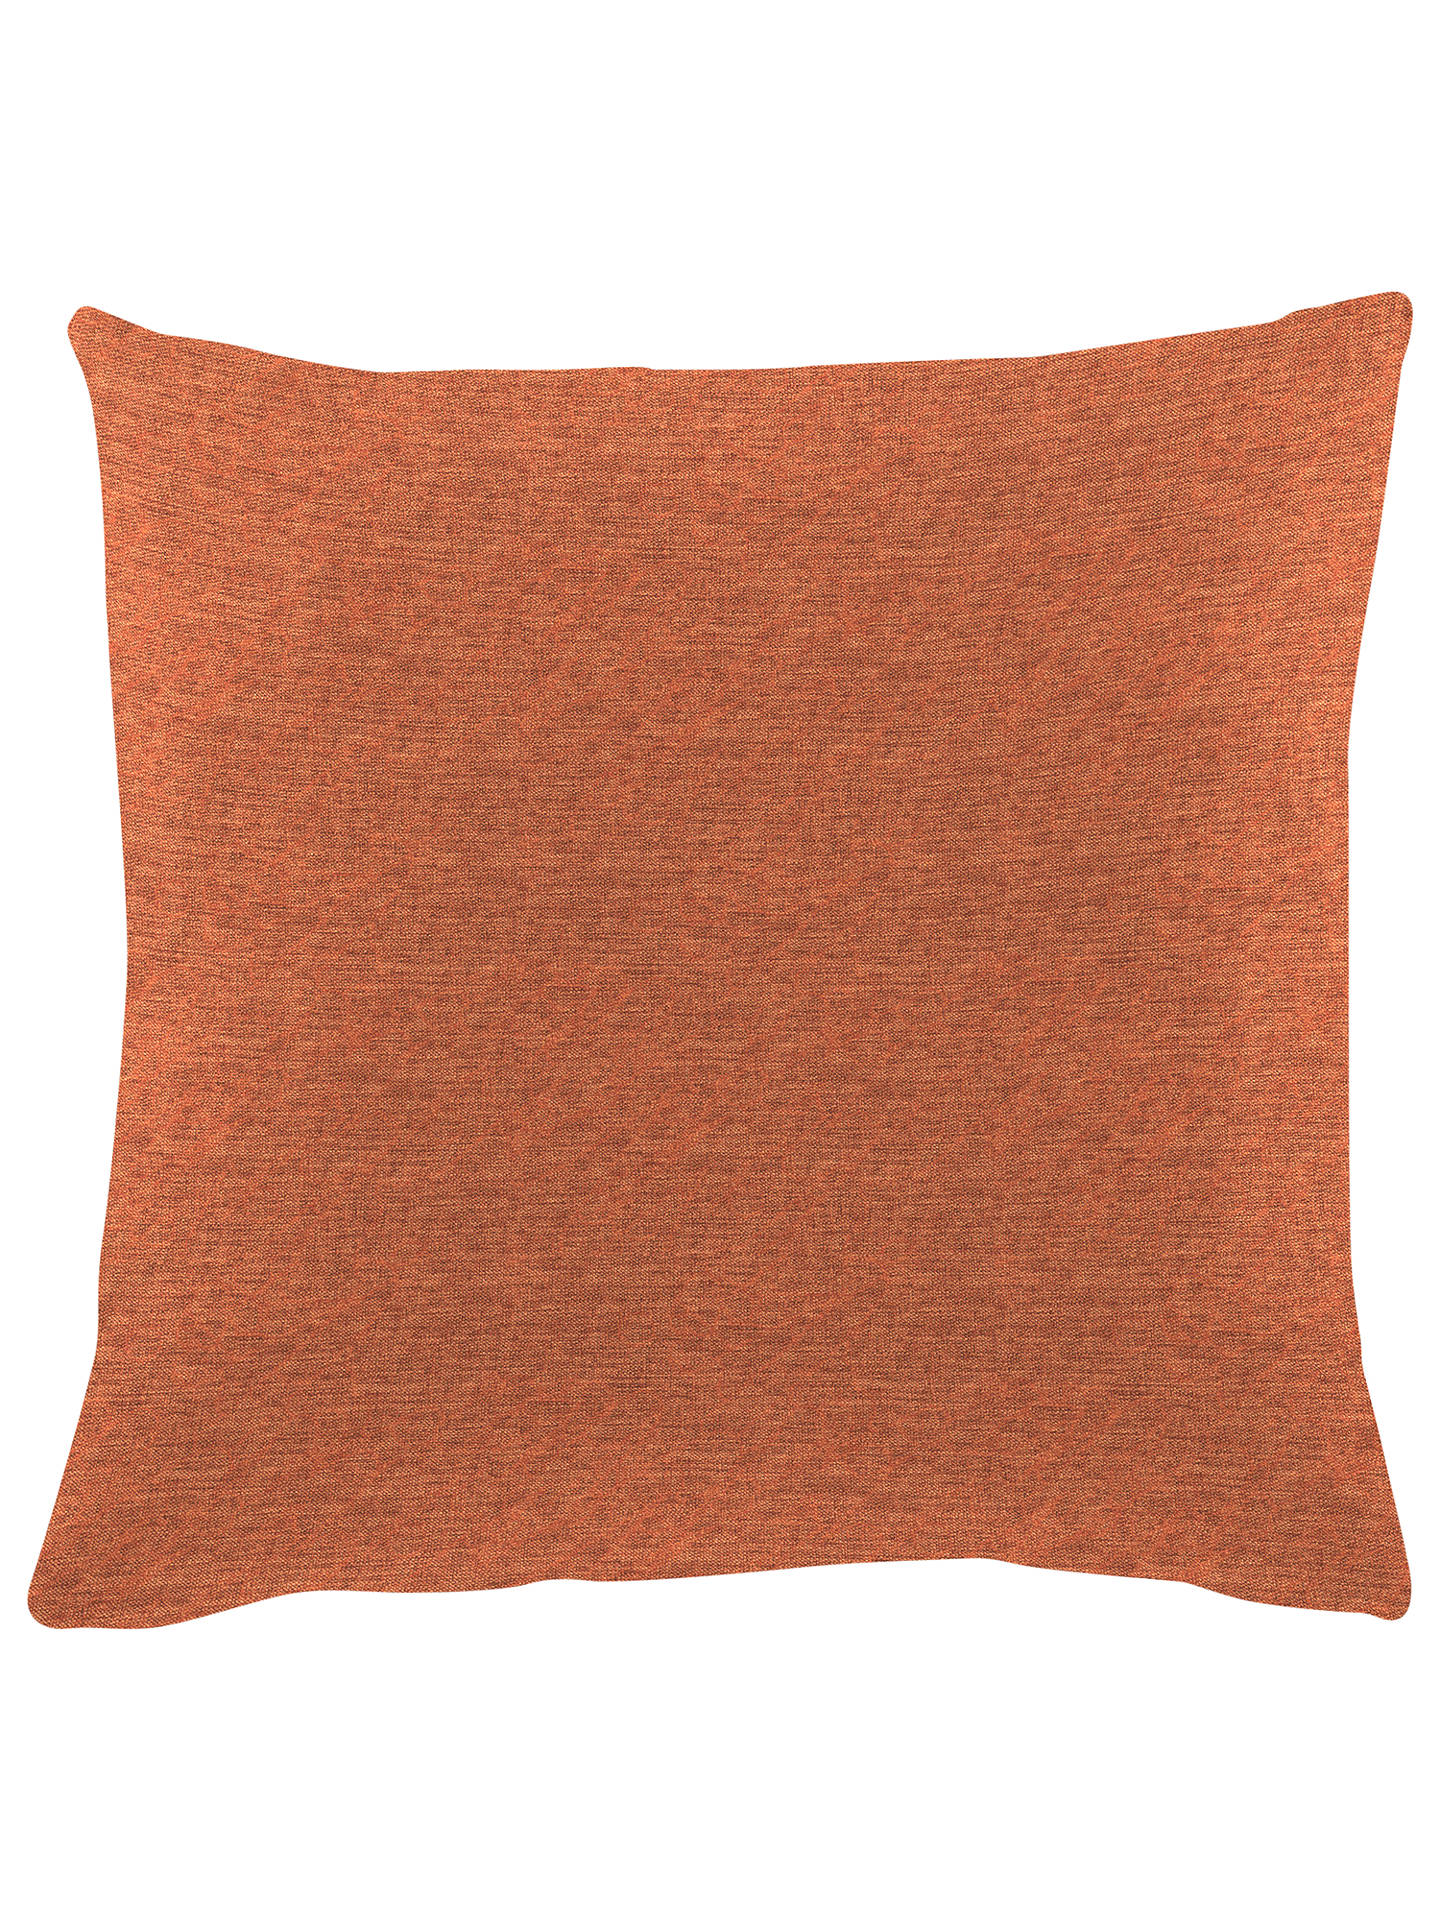 BuyG Plan Vintage Scatter Cushion, Tonic Orange Online at johnlewis.com